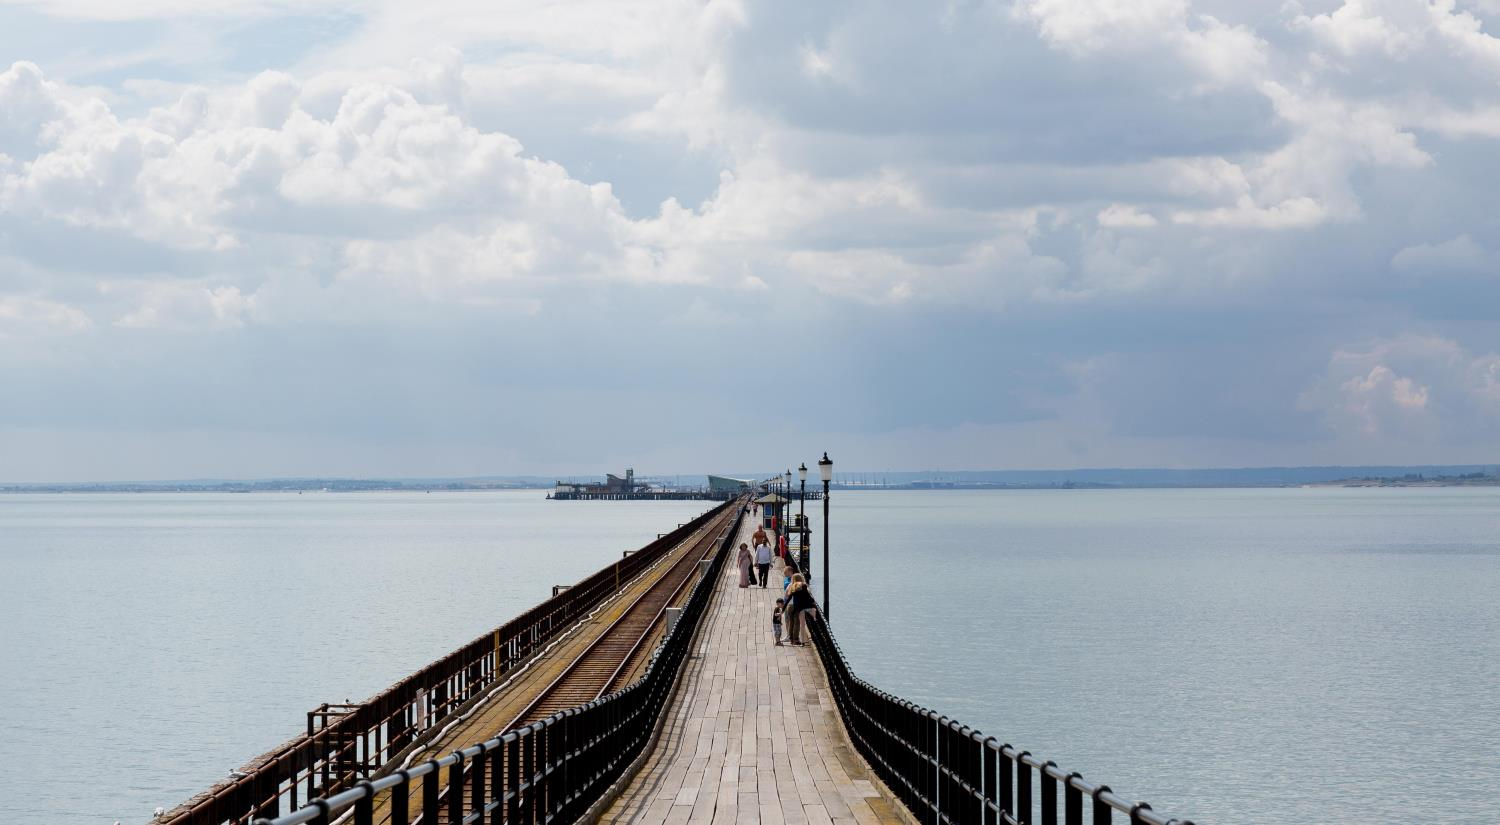 Take the train to the end of the world's longest pleasure pier